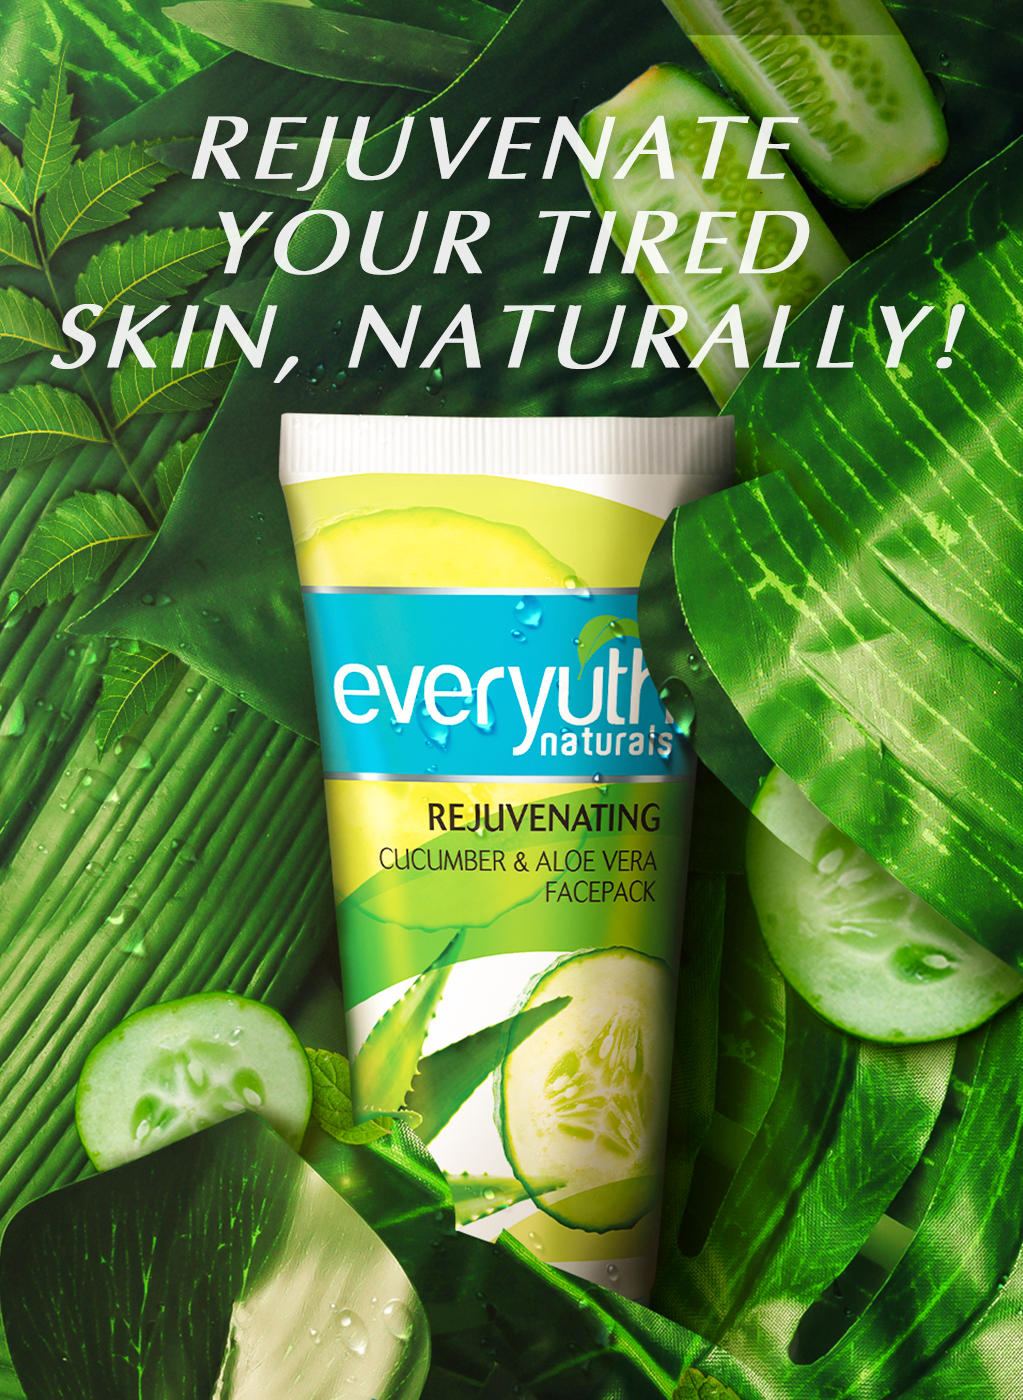 Everyuth Naturals Rejuvenating Face Pack